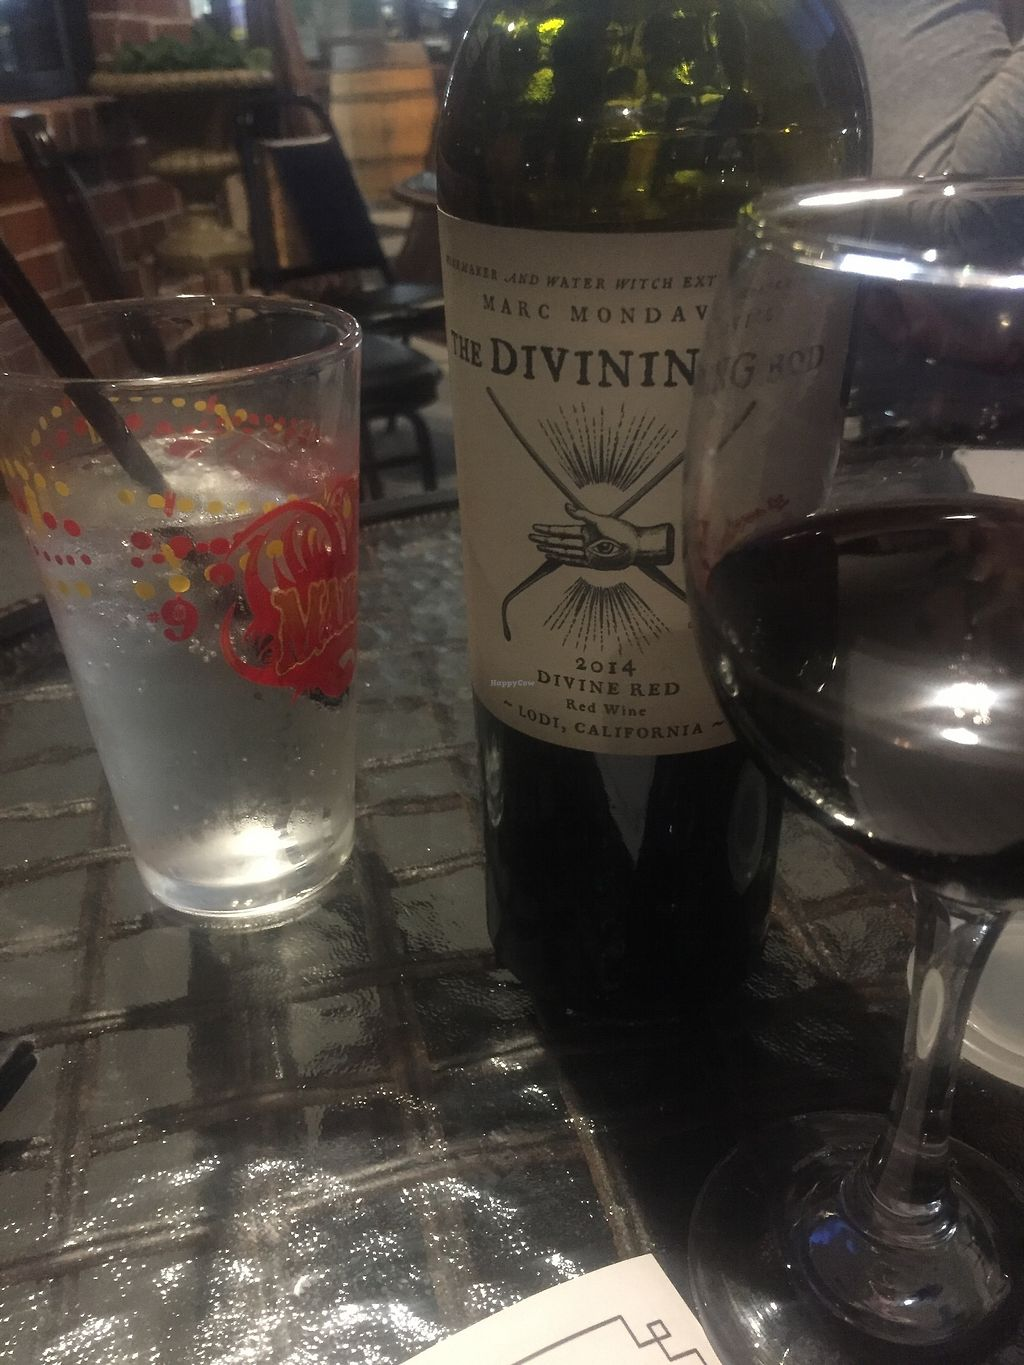 """Photo of Three Vines Bistro  by <a href=""""/members/profile/KaitlynnGill"""">KaitlynnGill</a> <br/>Drinks <br/> July 8, 2017  - <a href='/contact/abuse/image/95385/277849'>Report</a>"""